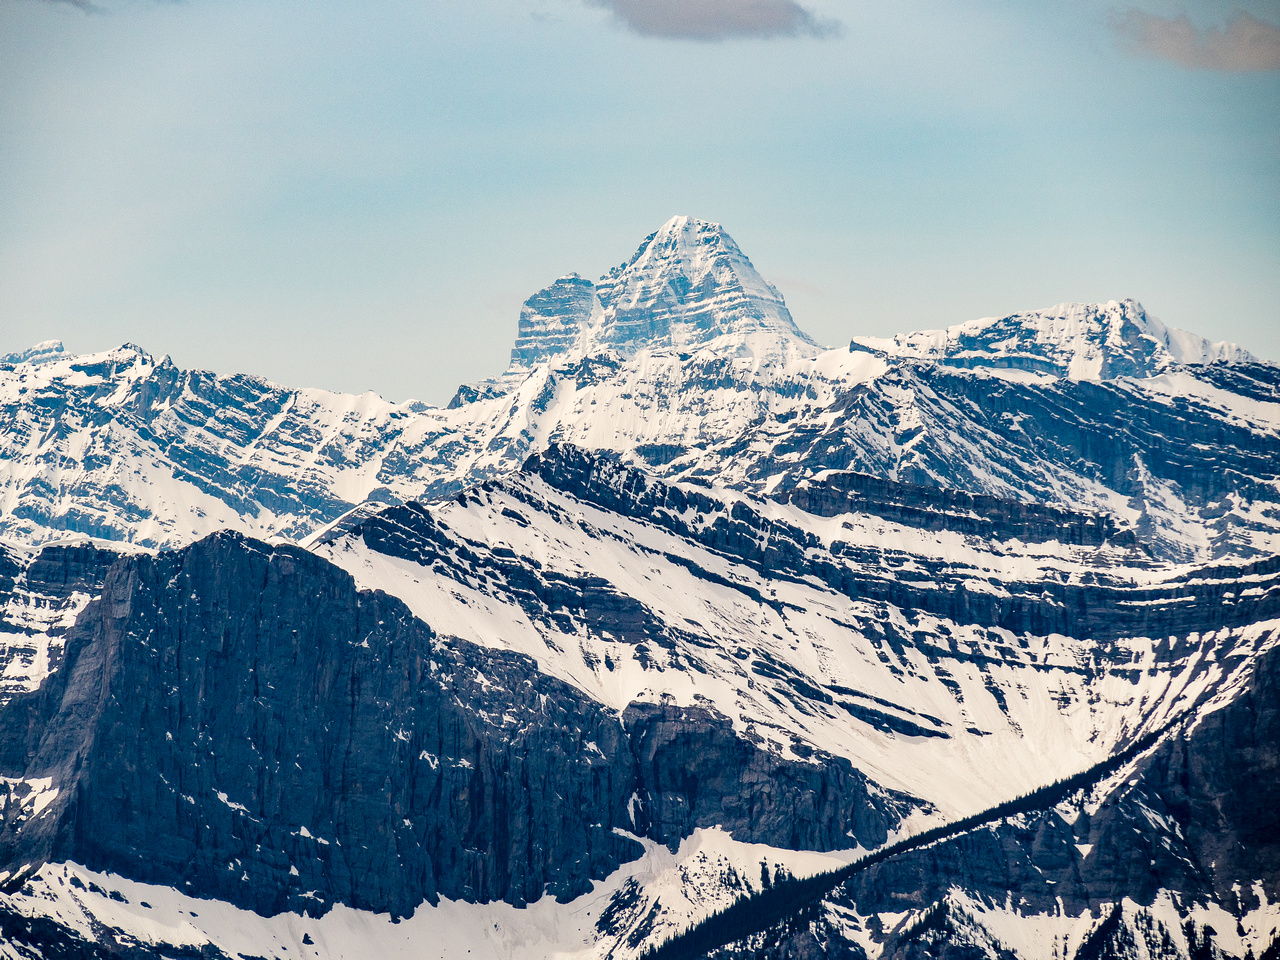 Mount Assiniboine looms over everything - as usual. Lunette at left.